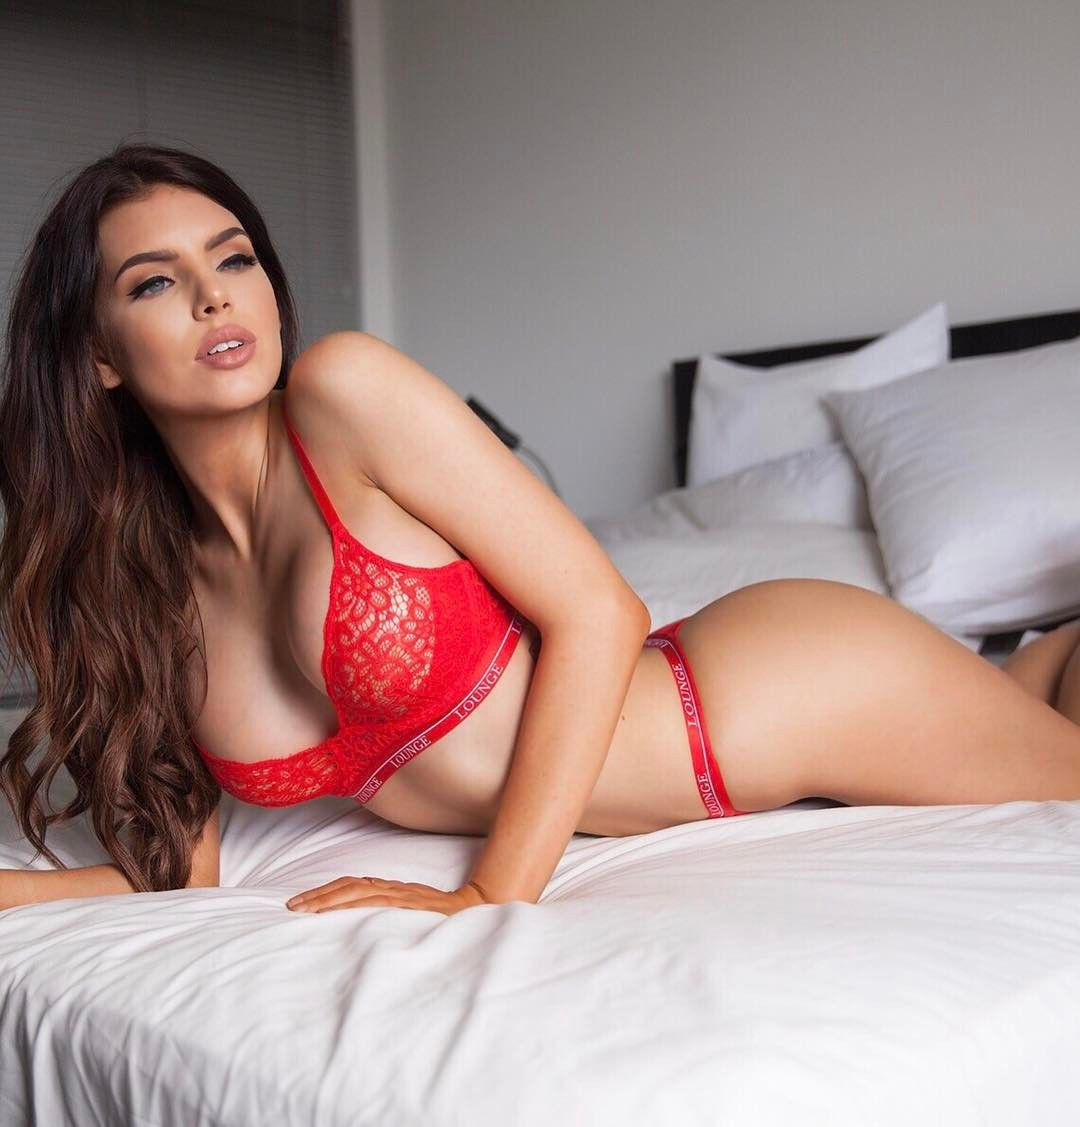 Young Nicole Thorne nude photos 2019